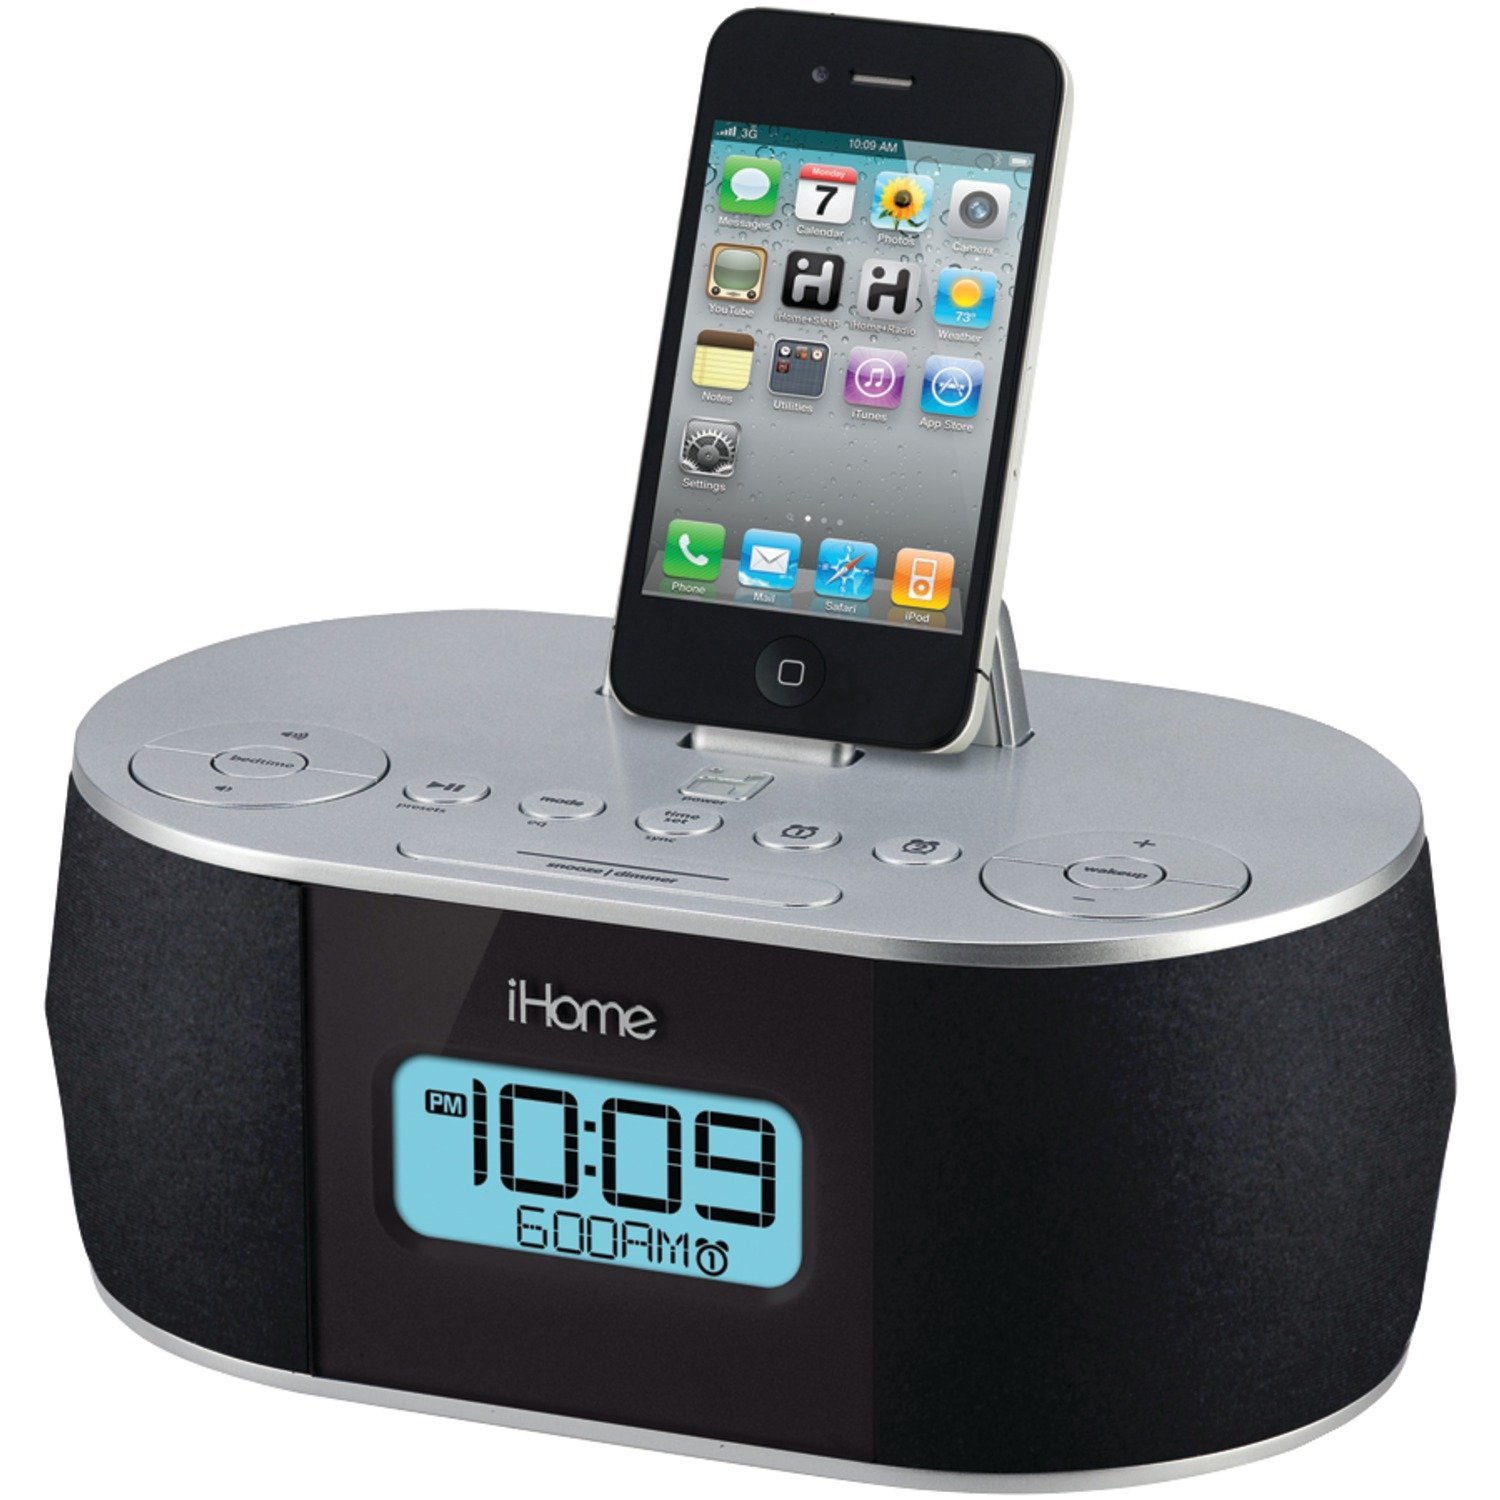 amazon com ihome stereo system with dual alarm fm clock radio for rh amazon com ihome alarm clock hih33 ihome alarm